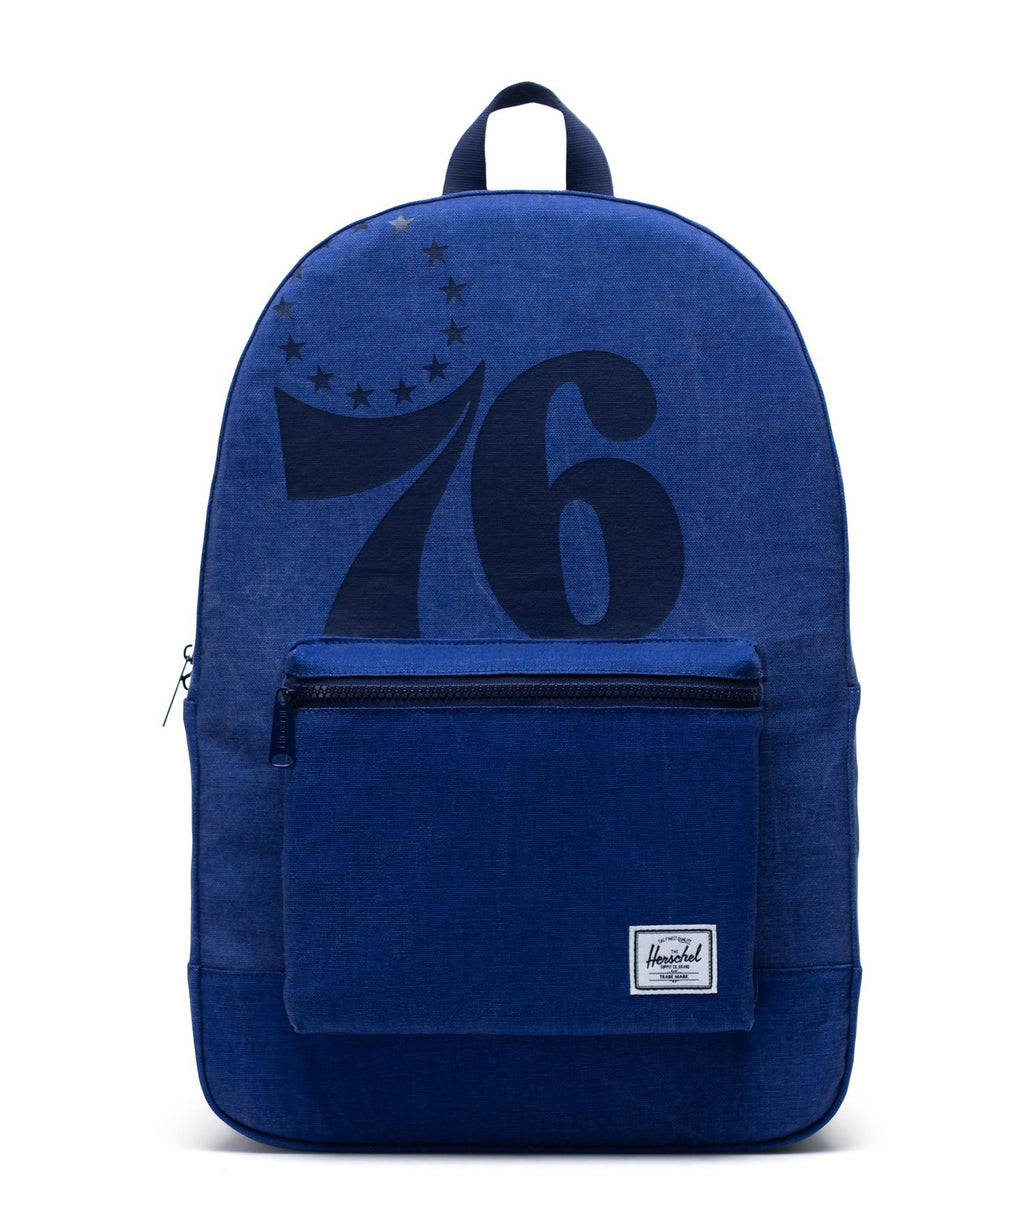 Philadelphia 76ers Daypack Backpack Blue